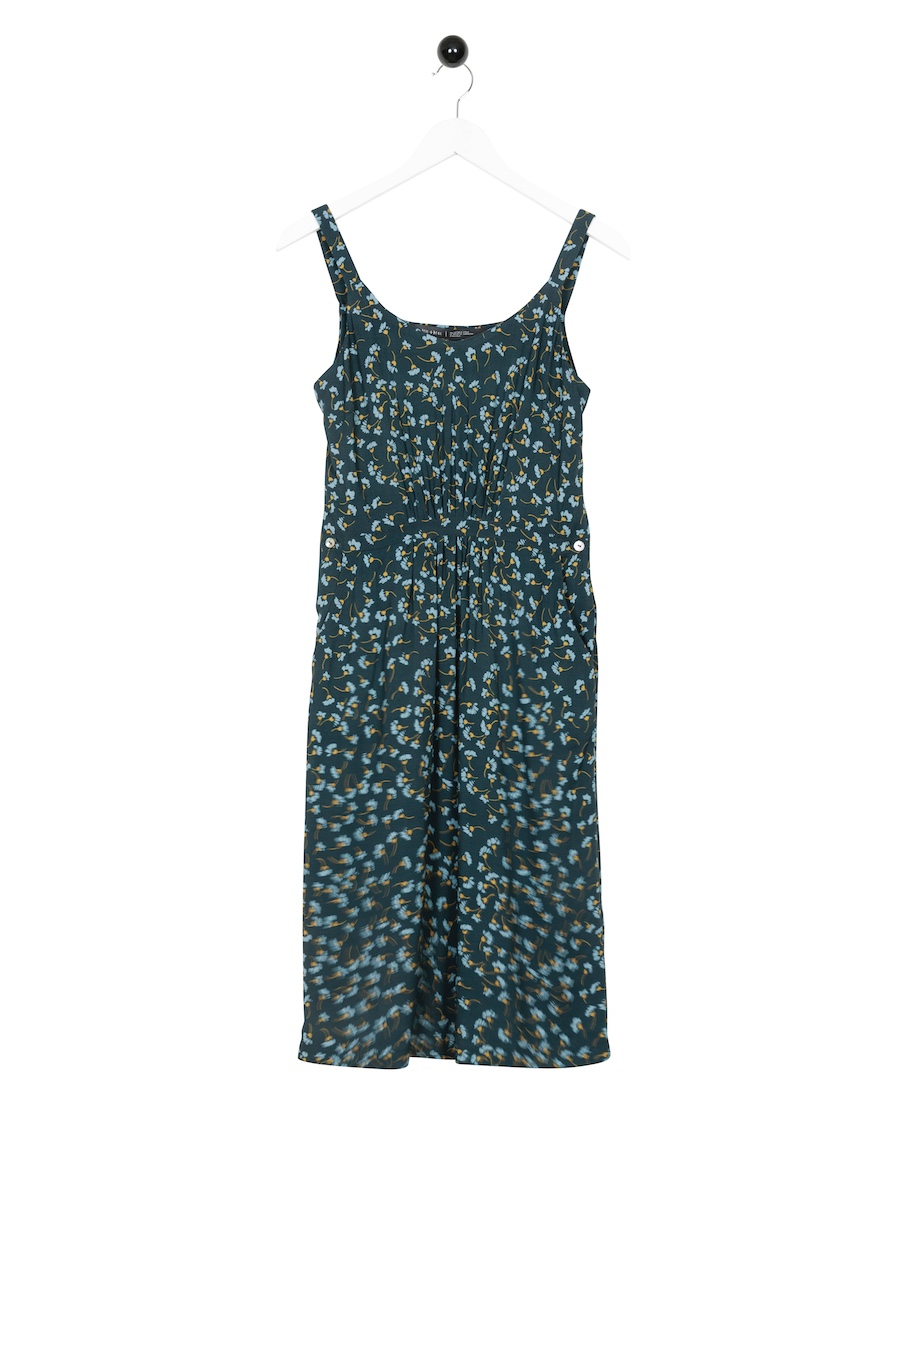 Malakit Dress Sleeveless